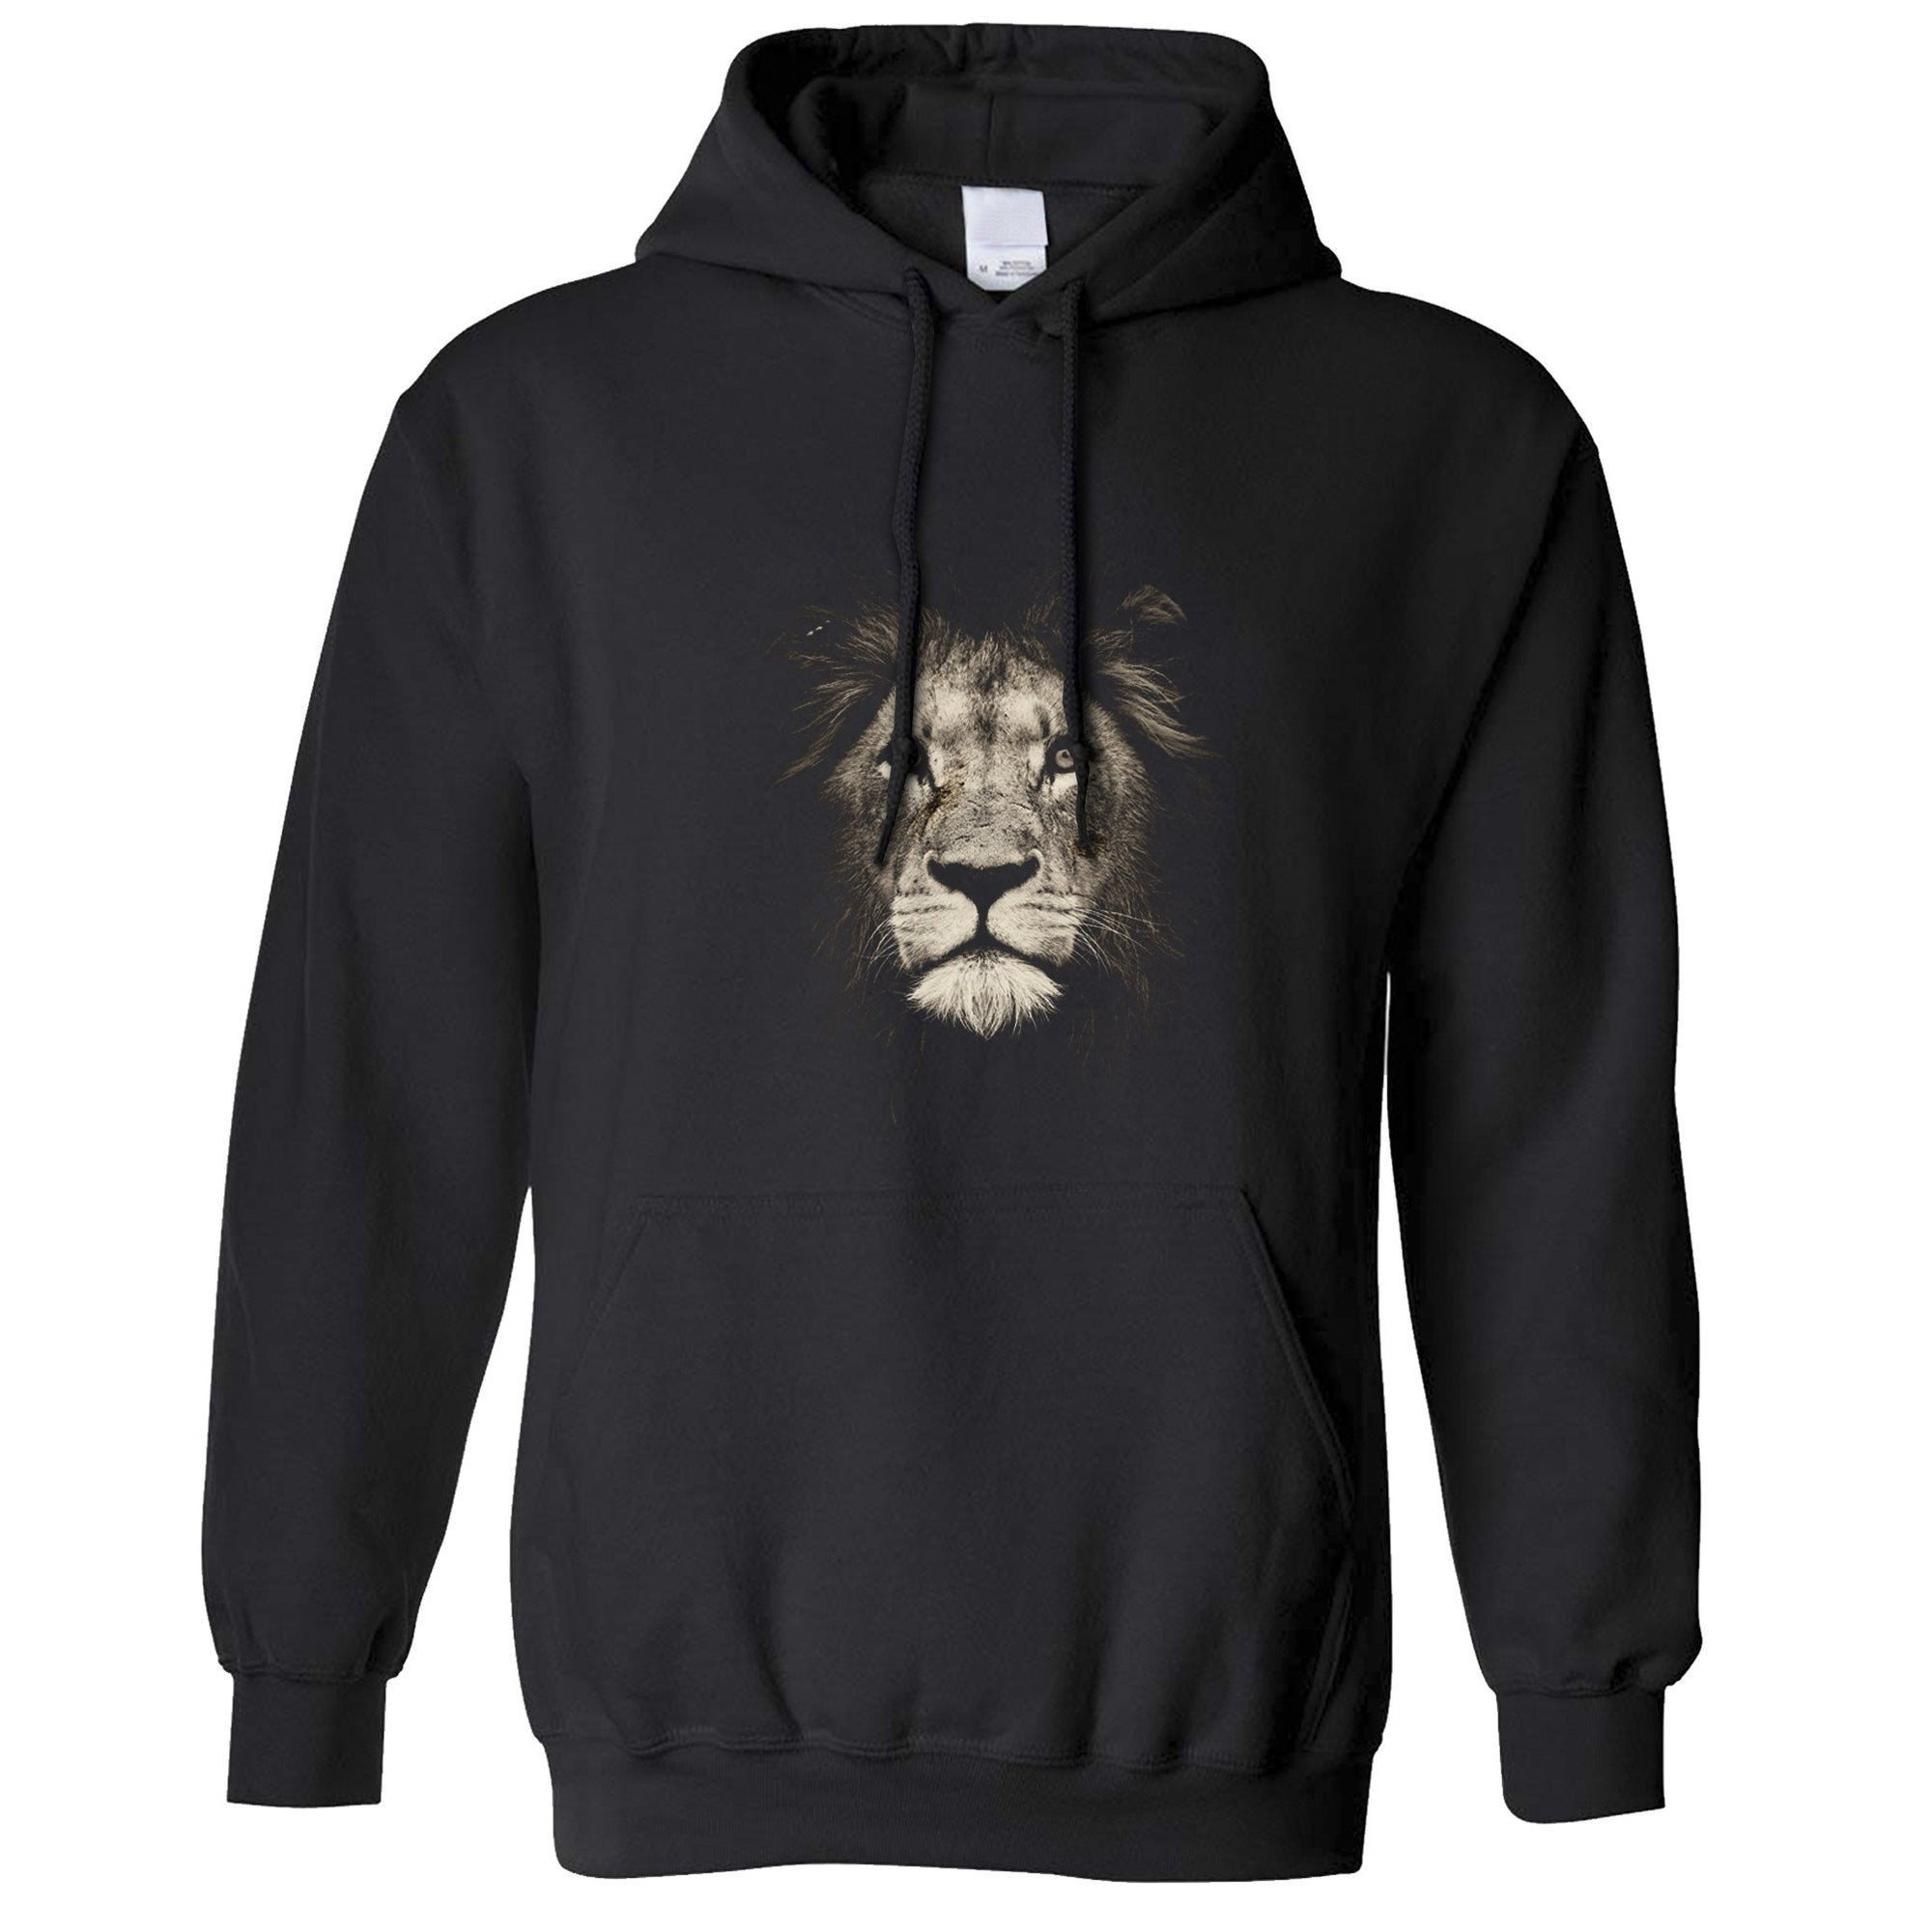 Stylish Animal Hoodie Photographic Lion Face Design Hooded Jumper